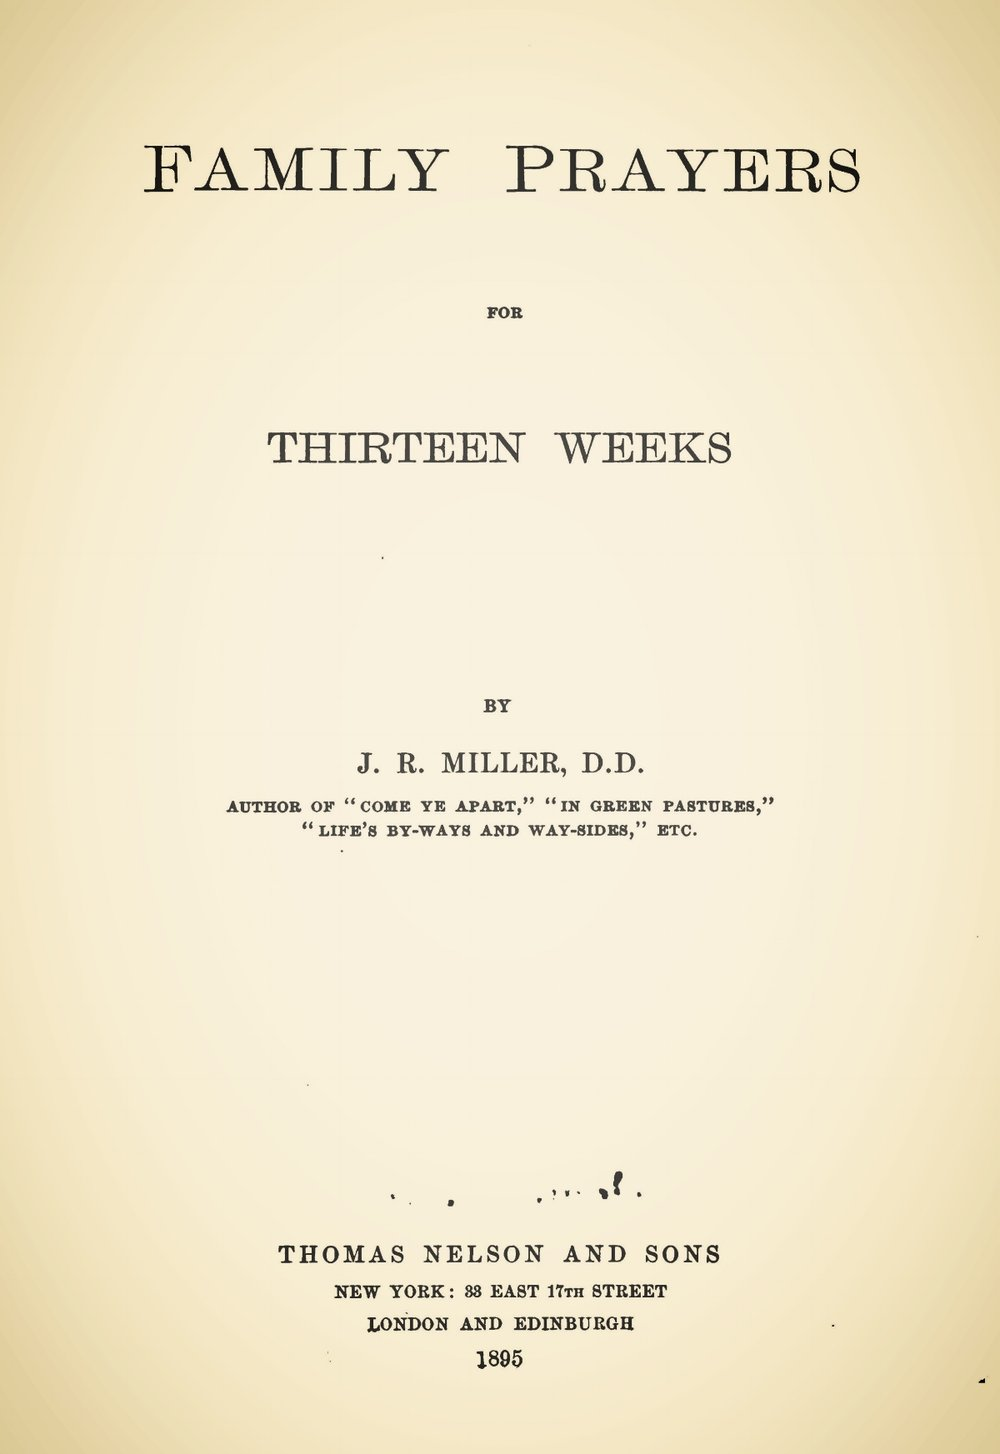 Miller, James Russell, Family Prayers for Thirteen Weeks Title Page.jpg